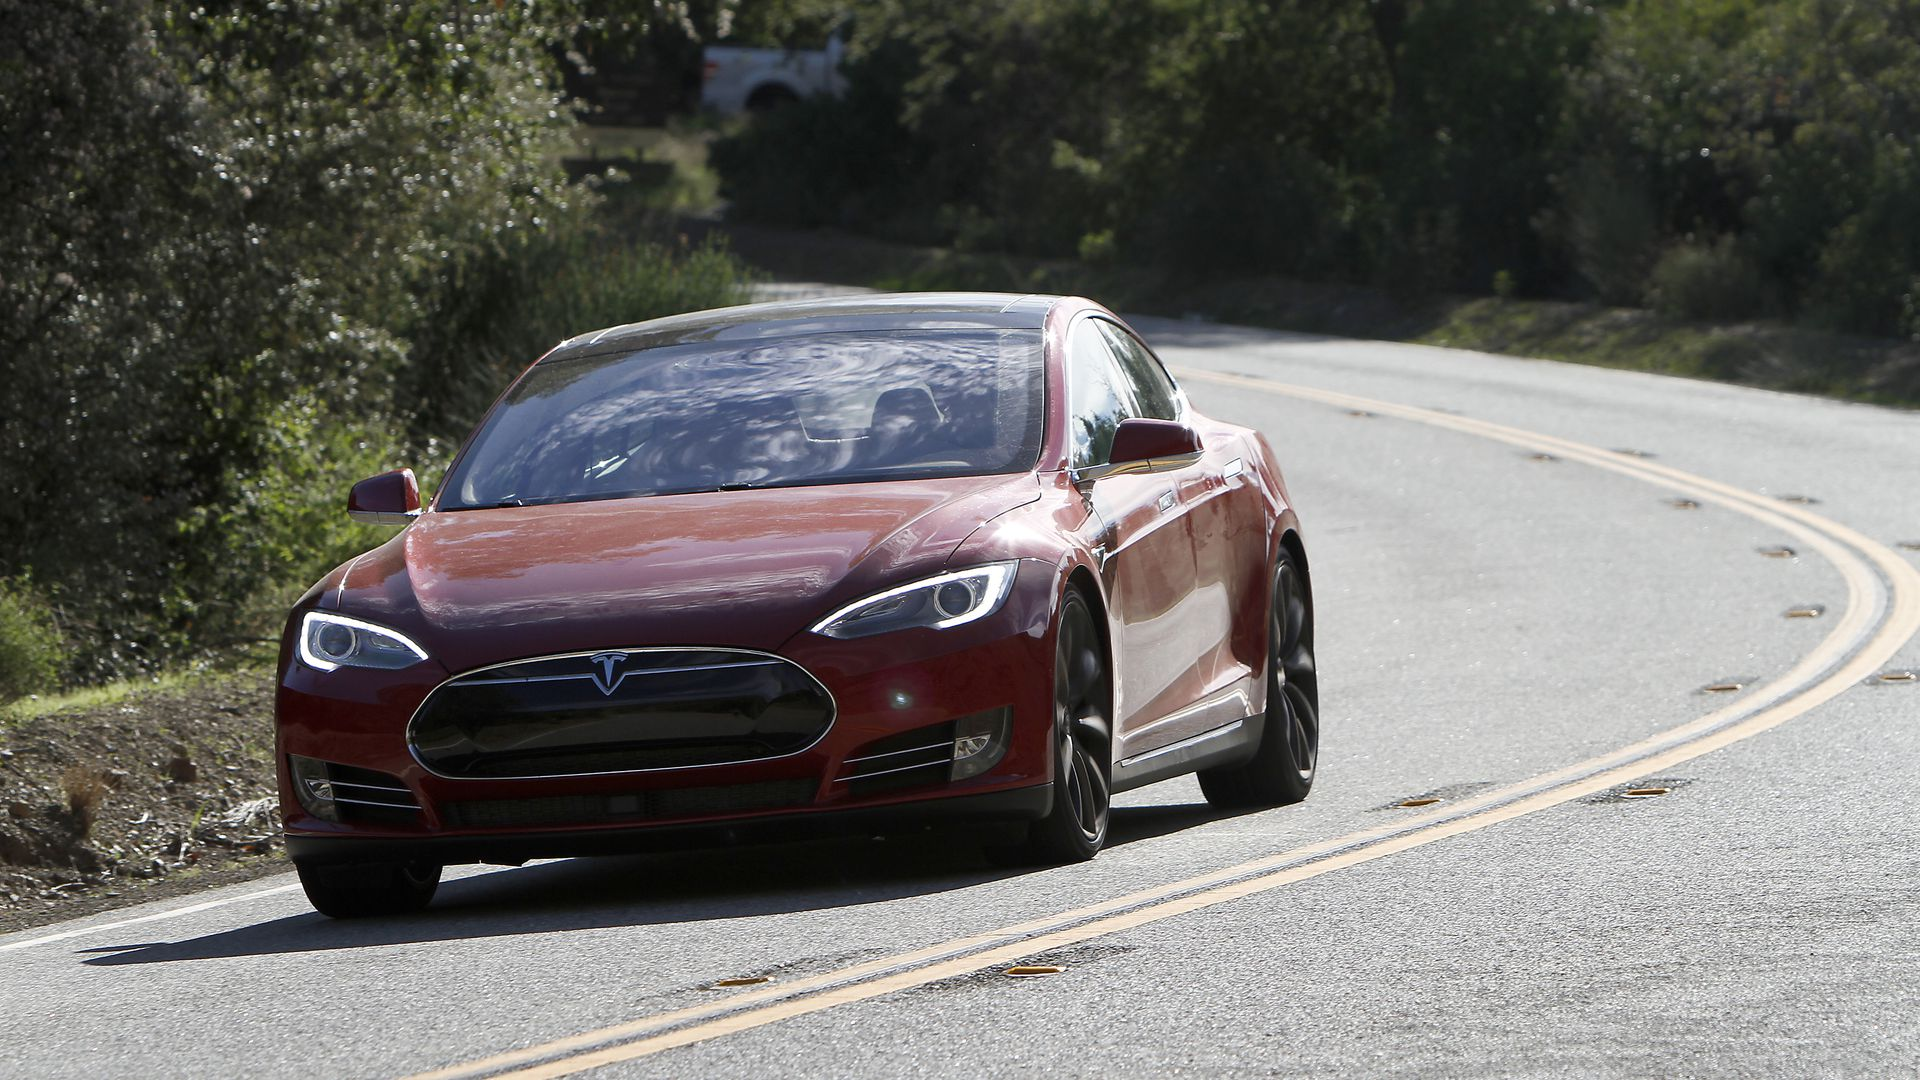 Red Tesla Sedan driving on the road.